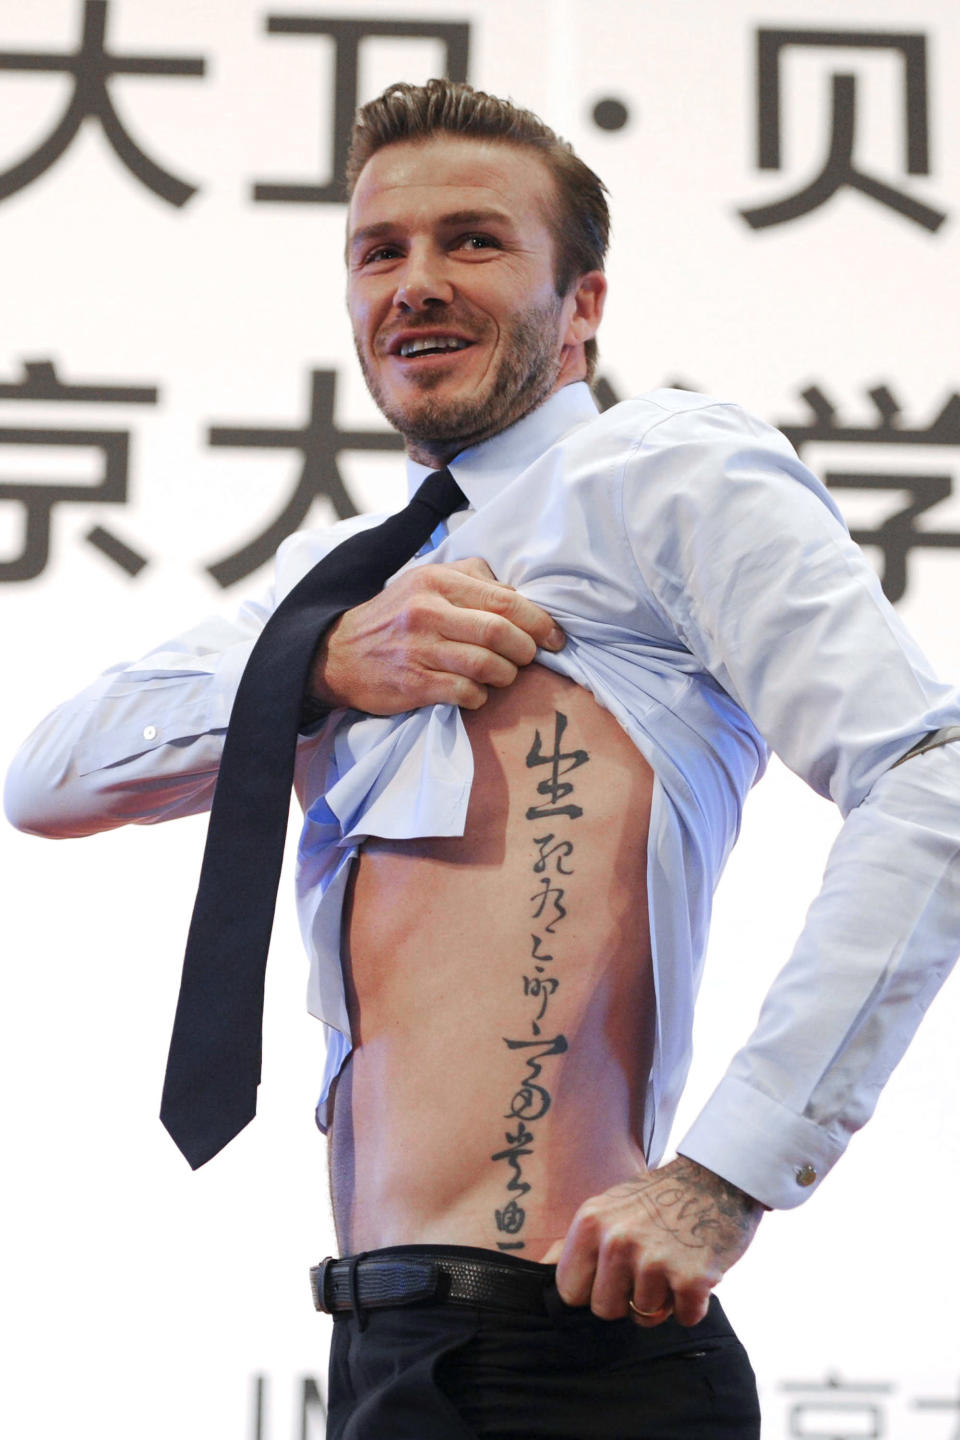 <p>David Beckham reportedly has over 50 tattoos, including one of his daughter Harper's name on his neck and the number 99 on his wrist – the year he wed wife Victoria Beckham. Here, you can see the former footballer's side tattoo which bears the words: 'Death and life have determined appointments, riches and honour depend upon heaven' in Chinese. <em>[Photo: Getty]</em> </p>